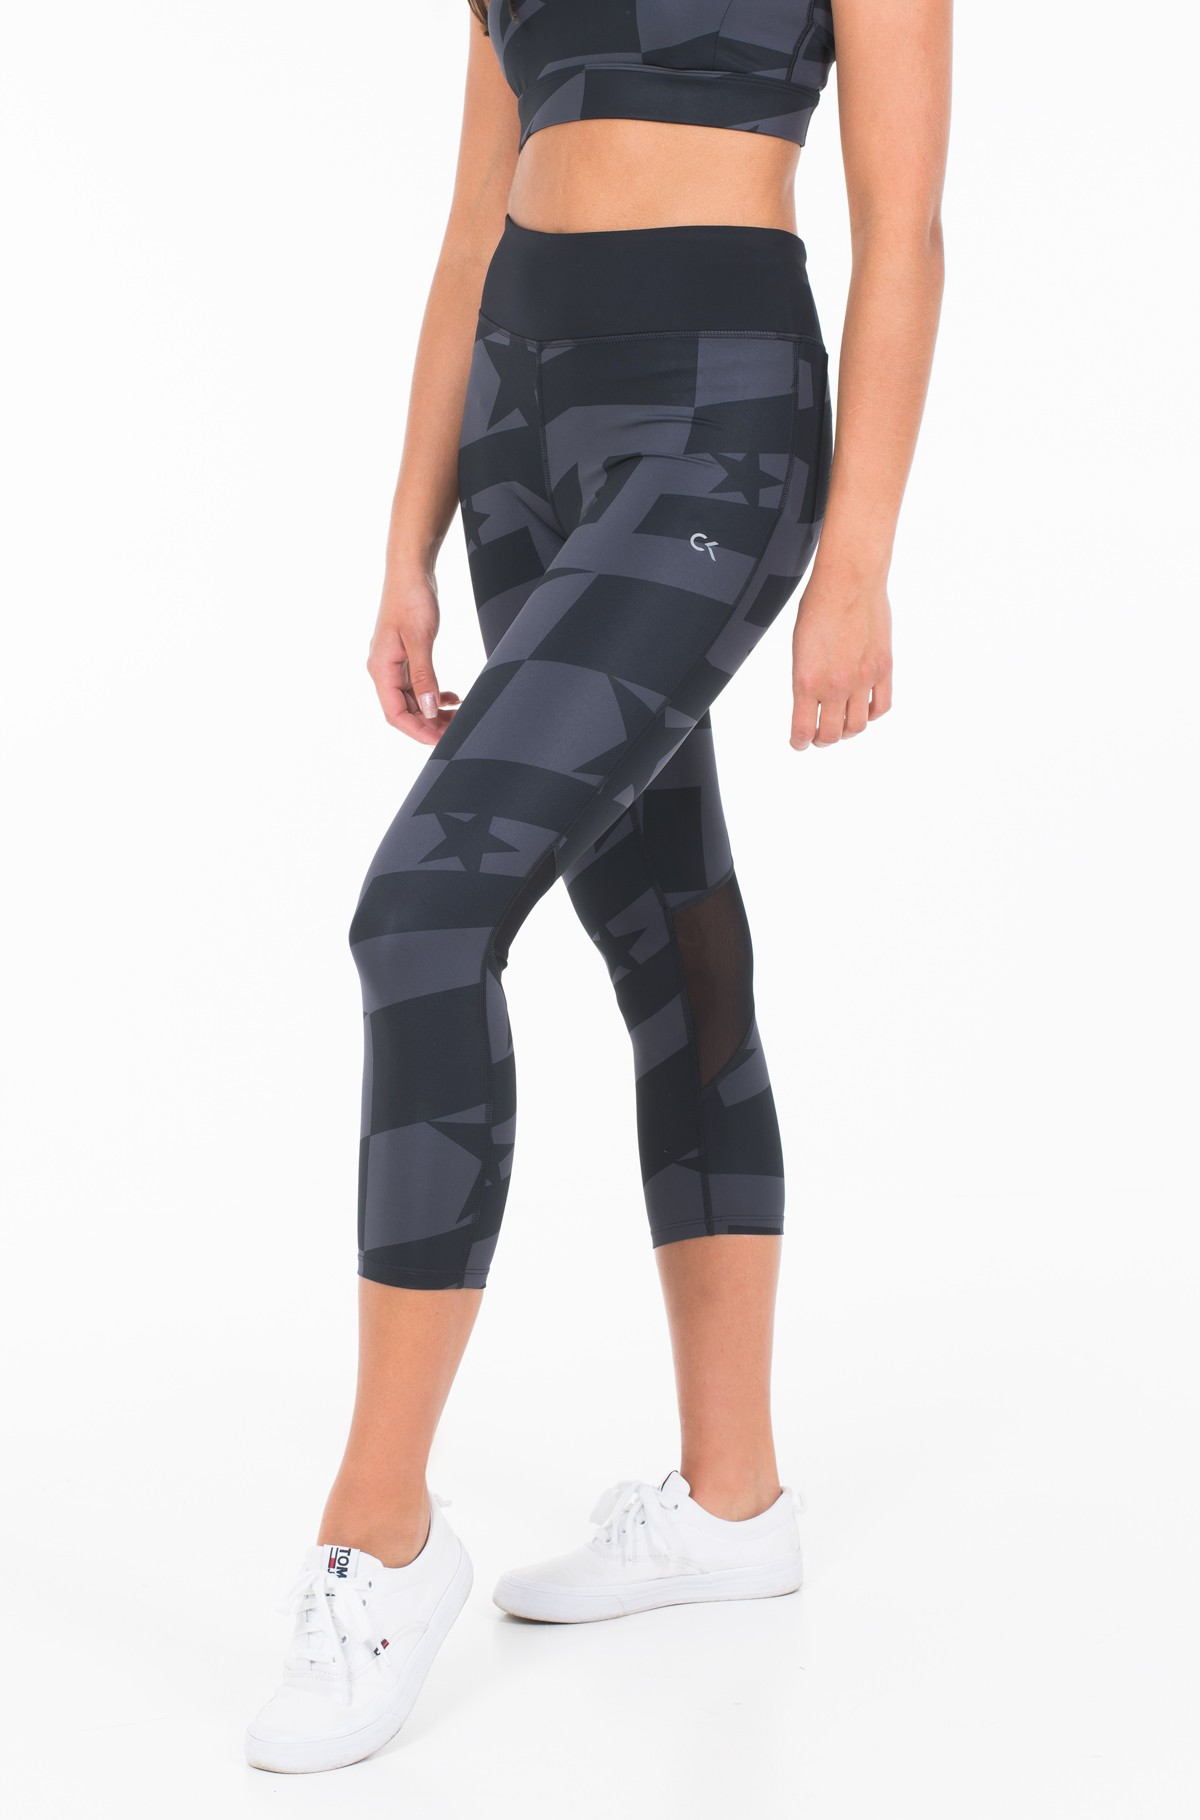 Sportinės kelnės CROP LENGTH PRINT TIGHT	-full-1